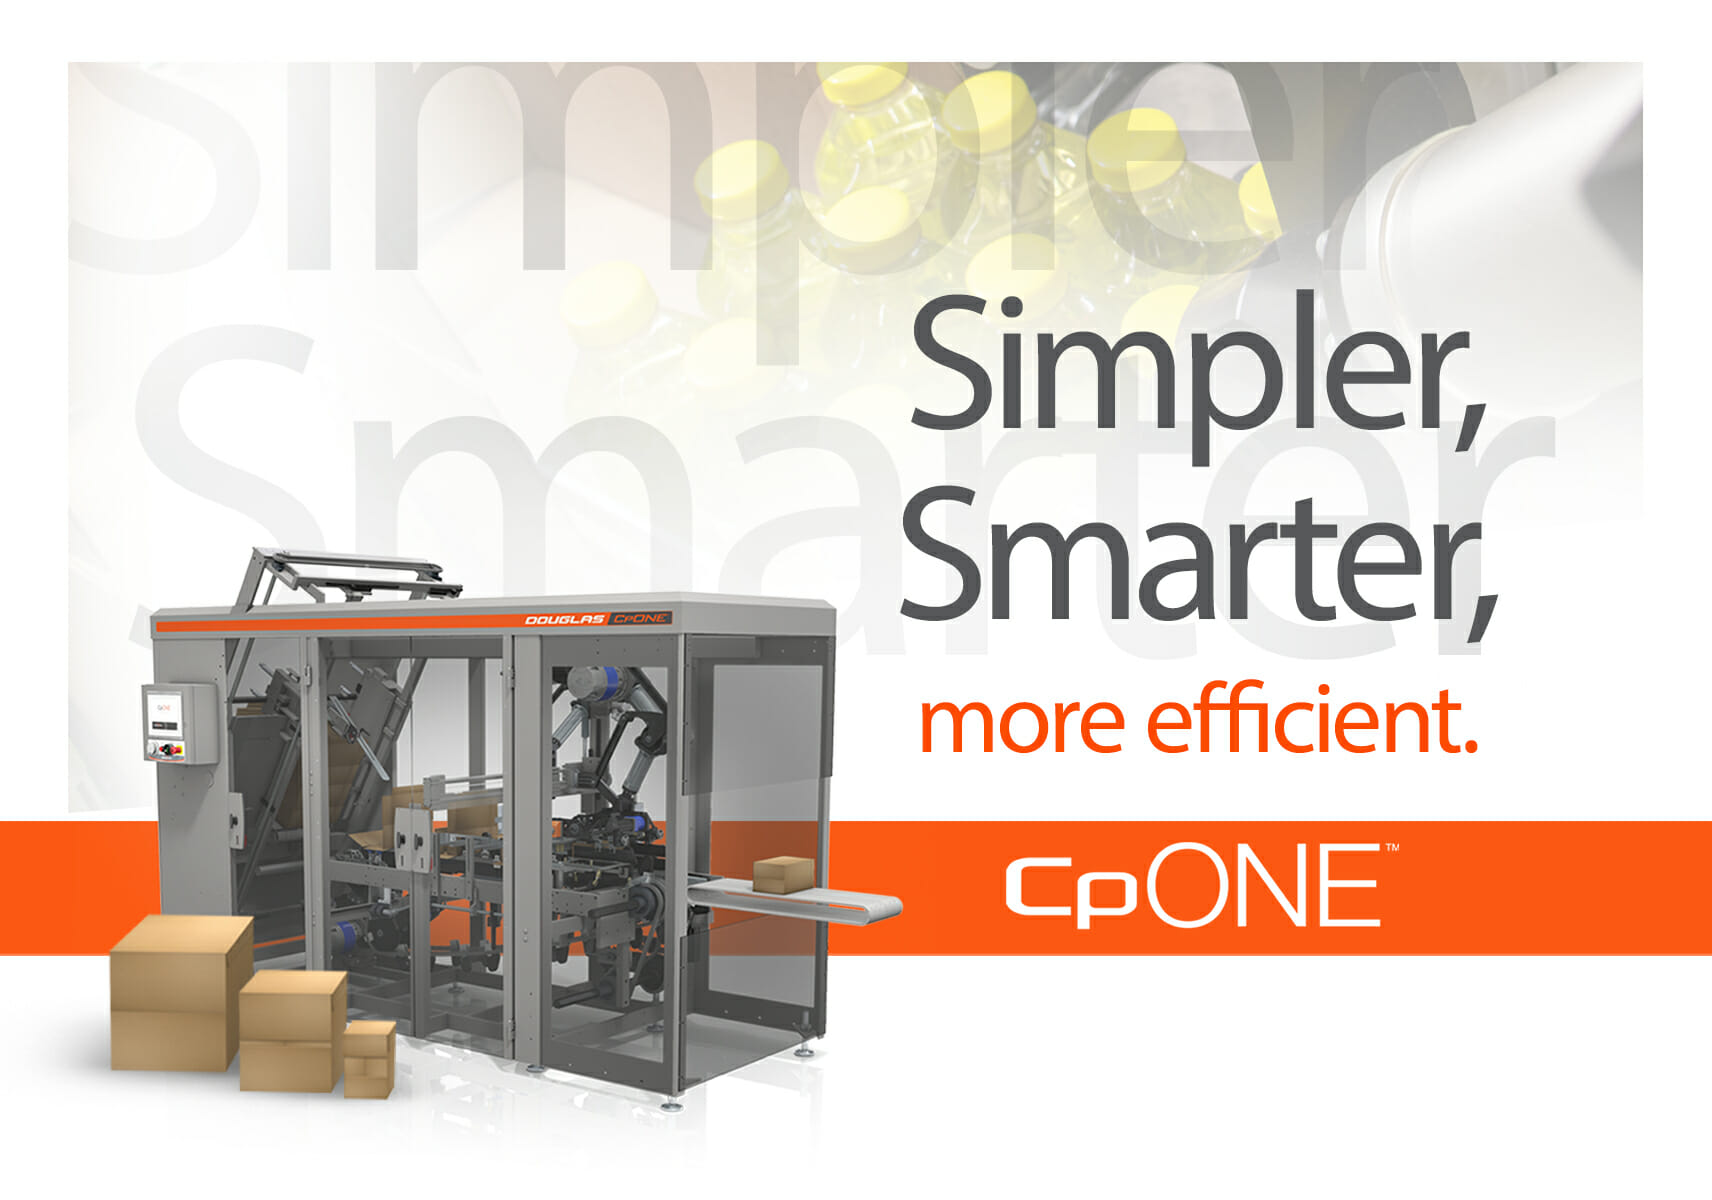 CpONE case & tray packer simplifies case packing operations